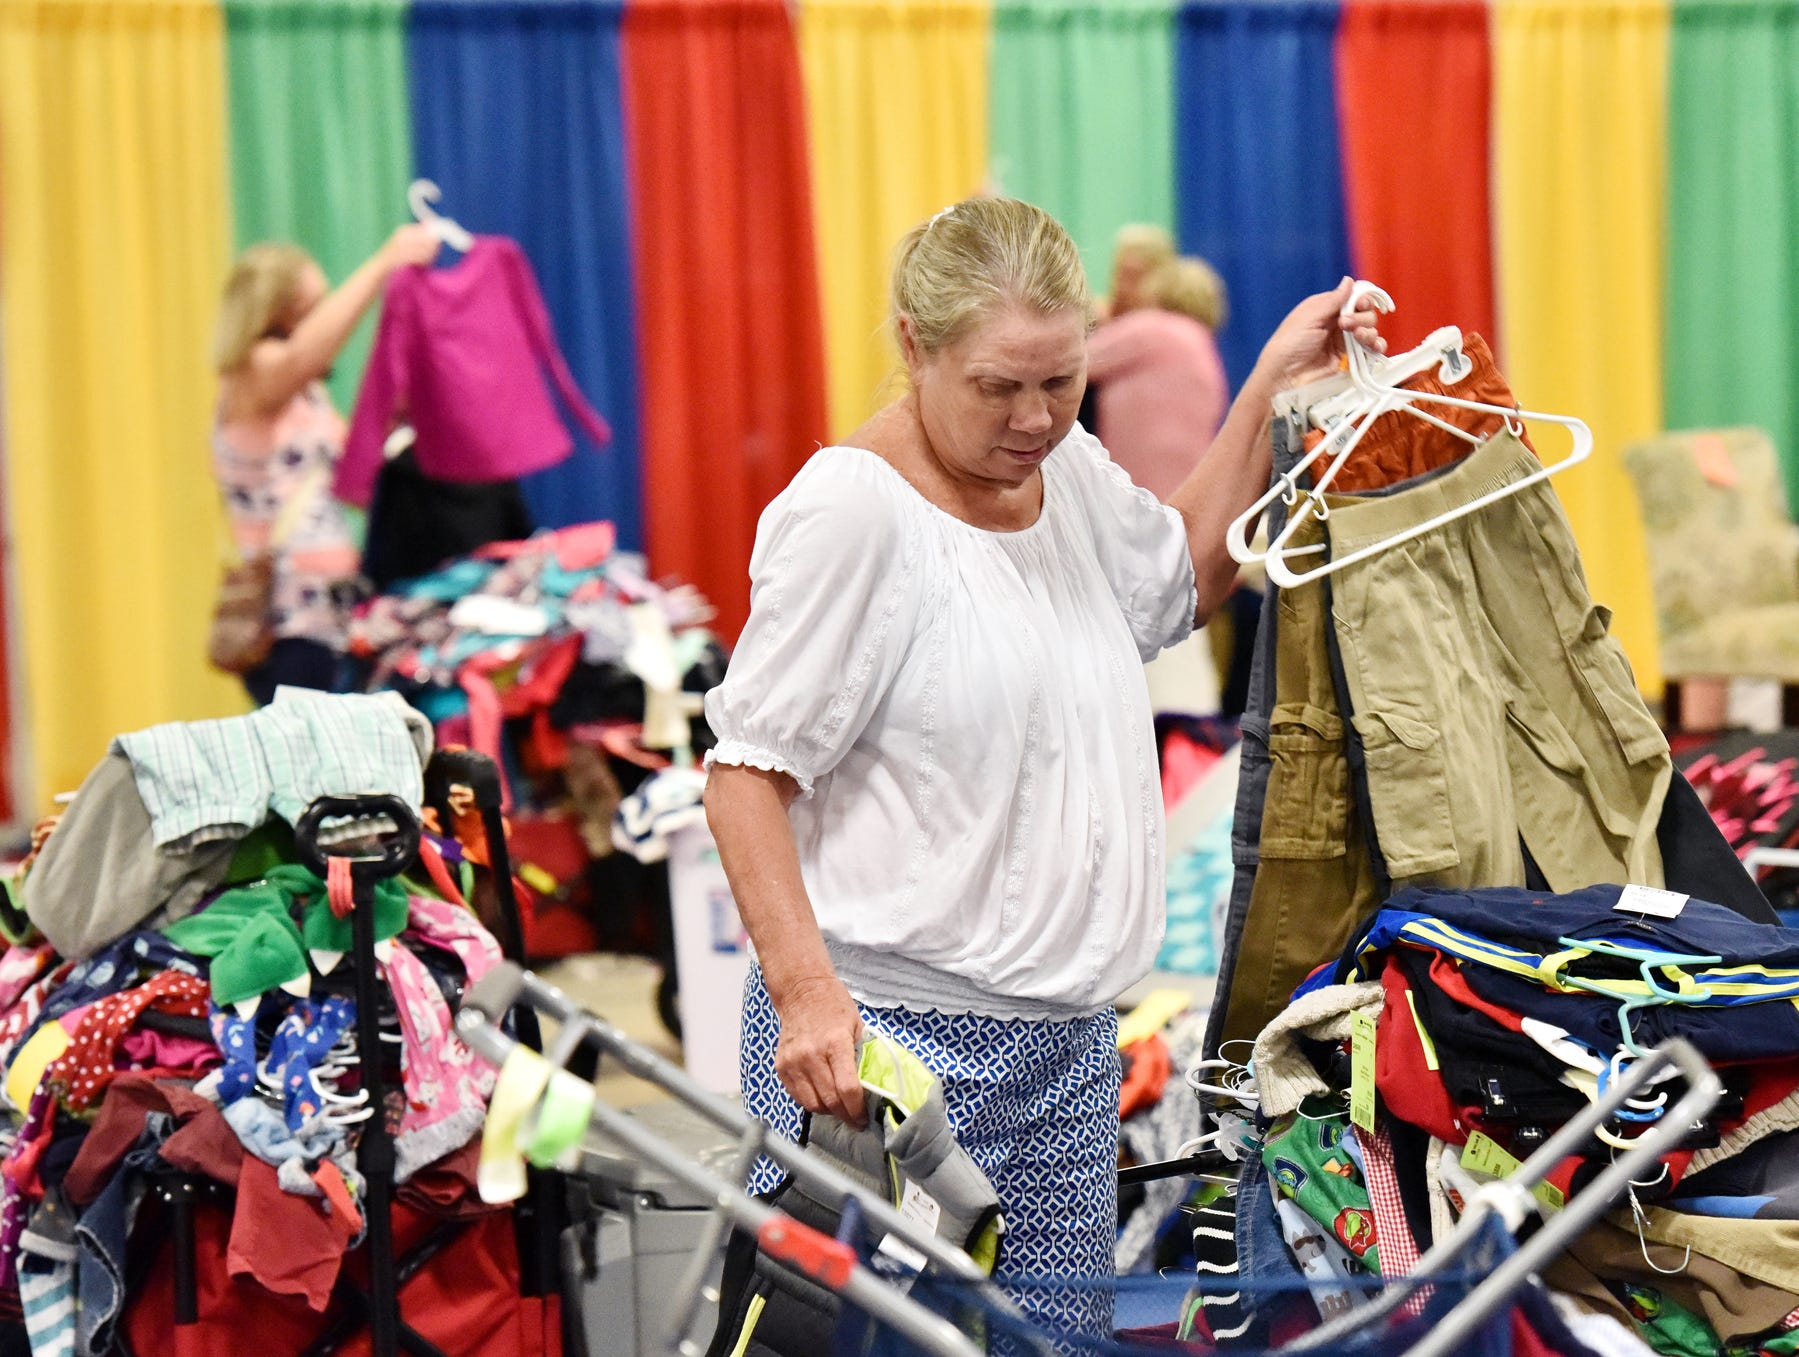 Monecca Chadwell sorths clothing during the Switch-A-Roos children's consignment event at the TD Convention Center in Greenville on Wednesday afternoon, August 8, 2018.